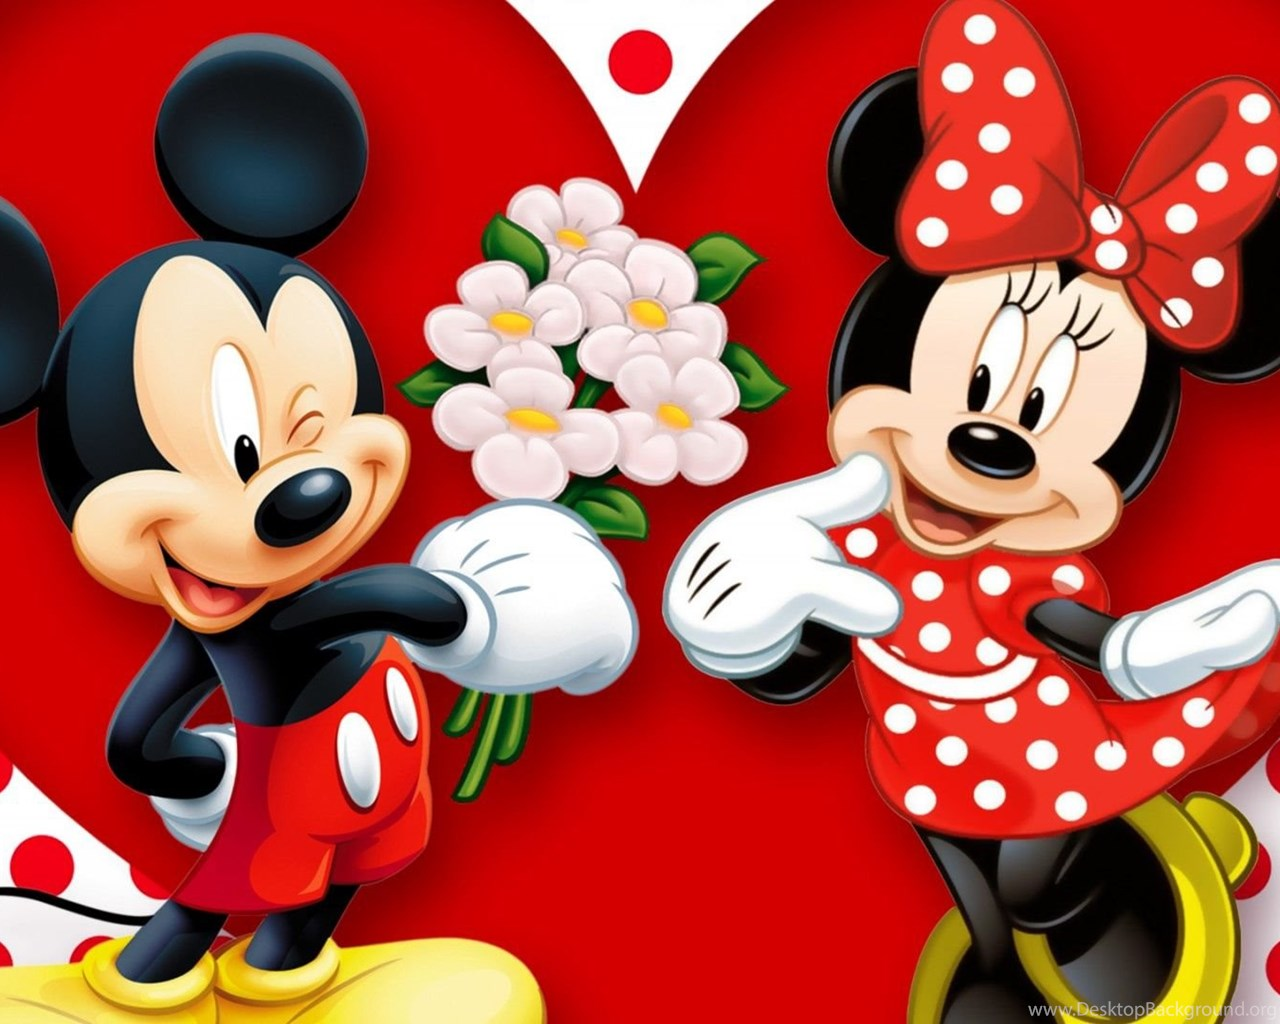 Full hd 1080p mickey mouse wallpapers hd desktop - Mickey mouse hd wallpaper 1366x768 ...